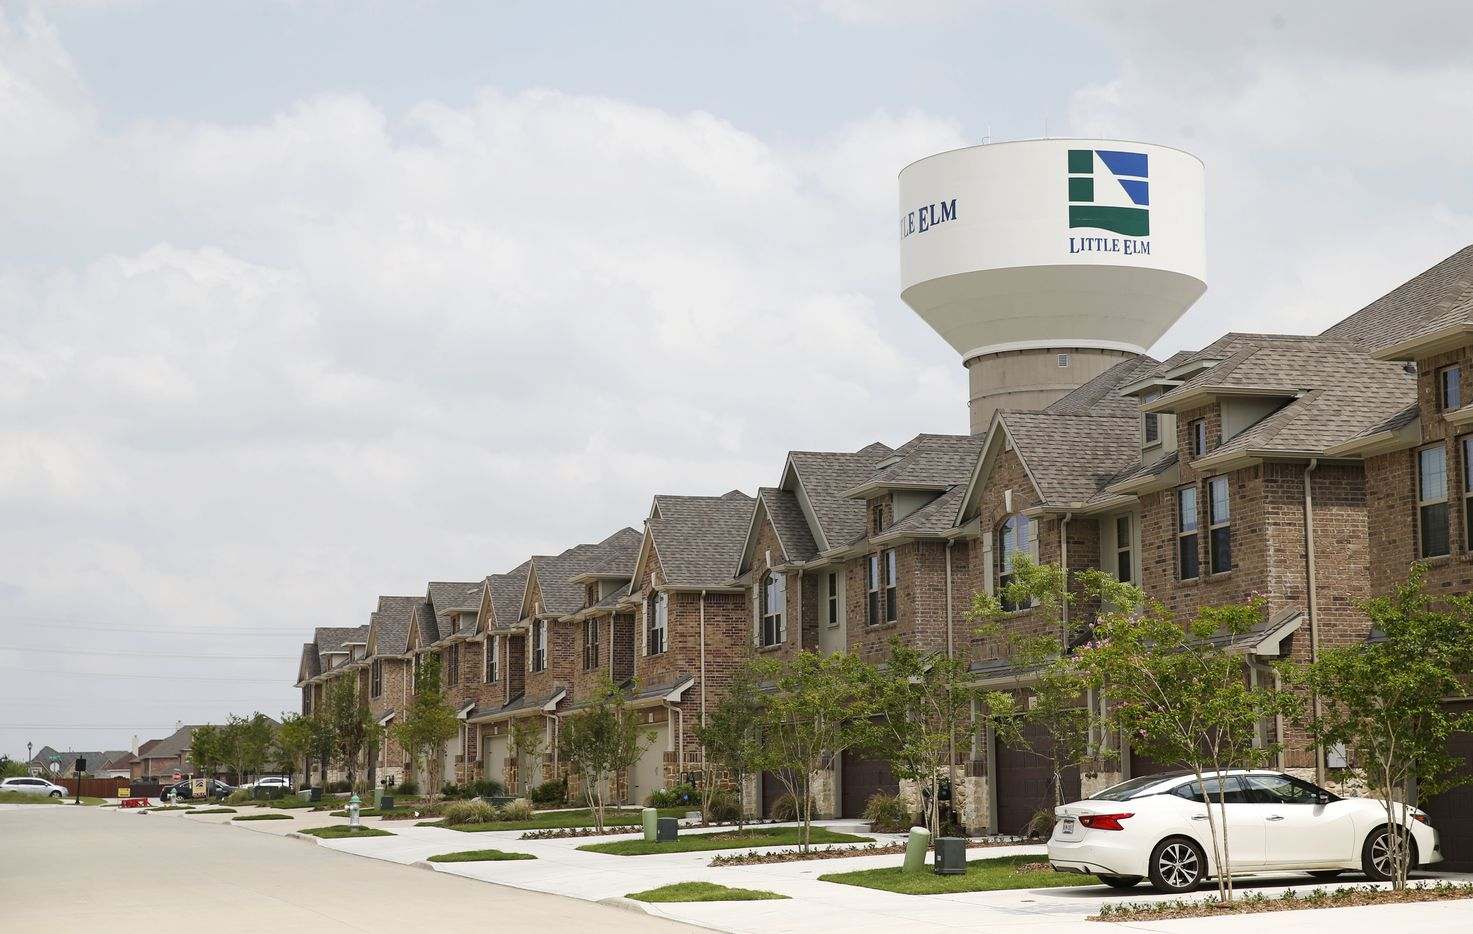 Townhomes in Little Elm, Texas on Wednesday, May 22, 2019. Little Elm, which had just 3,500 people as of the 2000 Census, surpassed 50,000 residents in 2018. (Vernon Bryant/The Dallas Morning News)